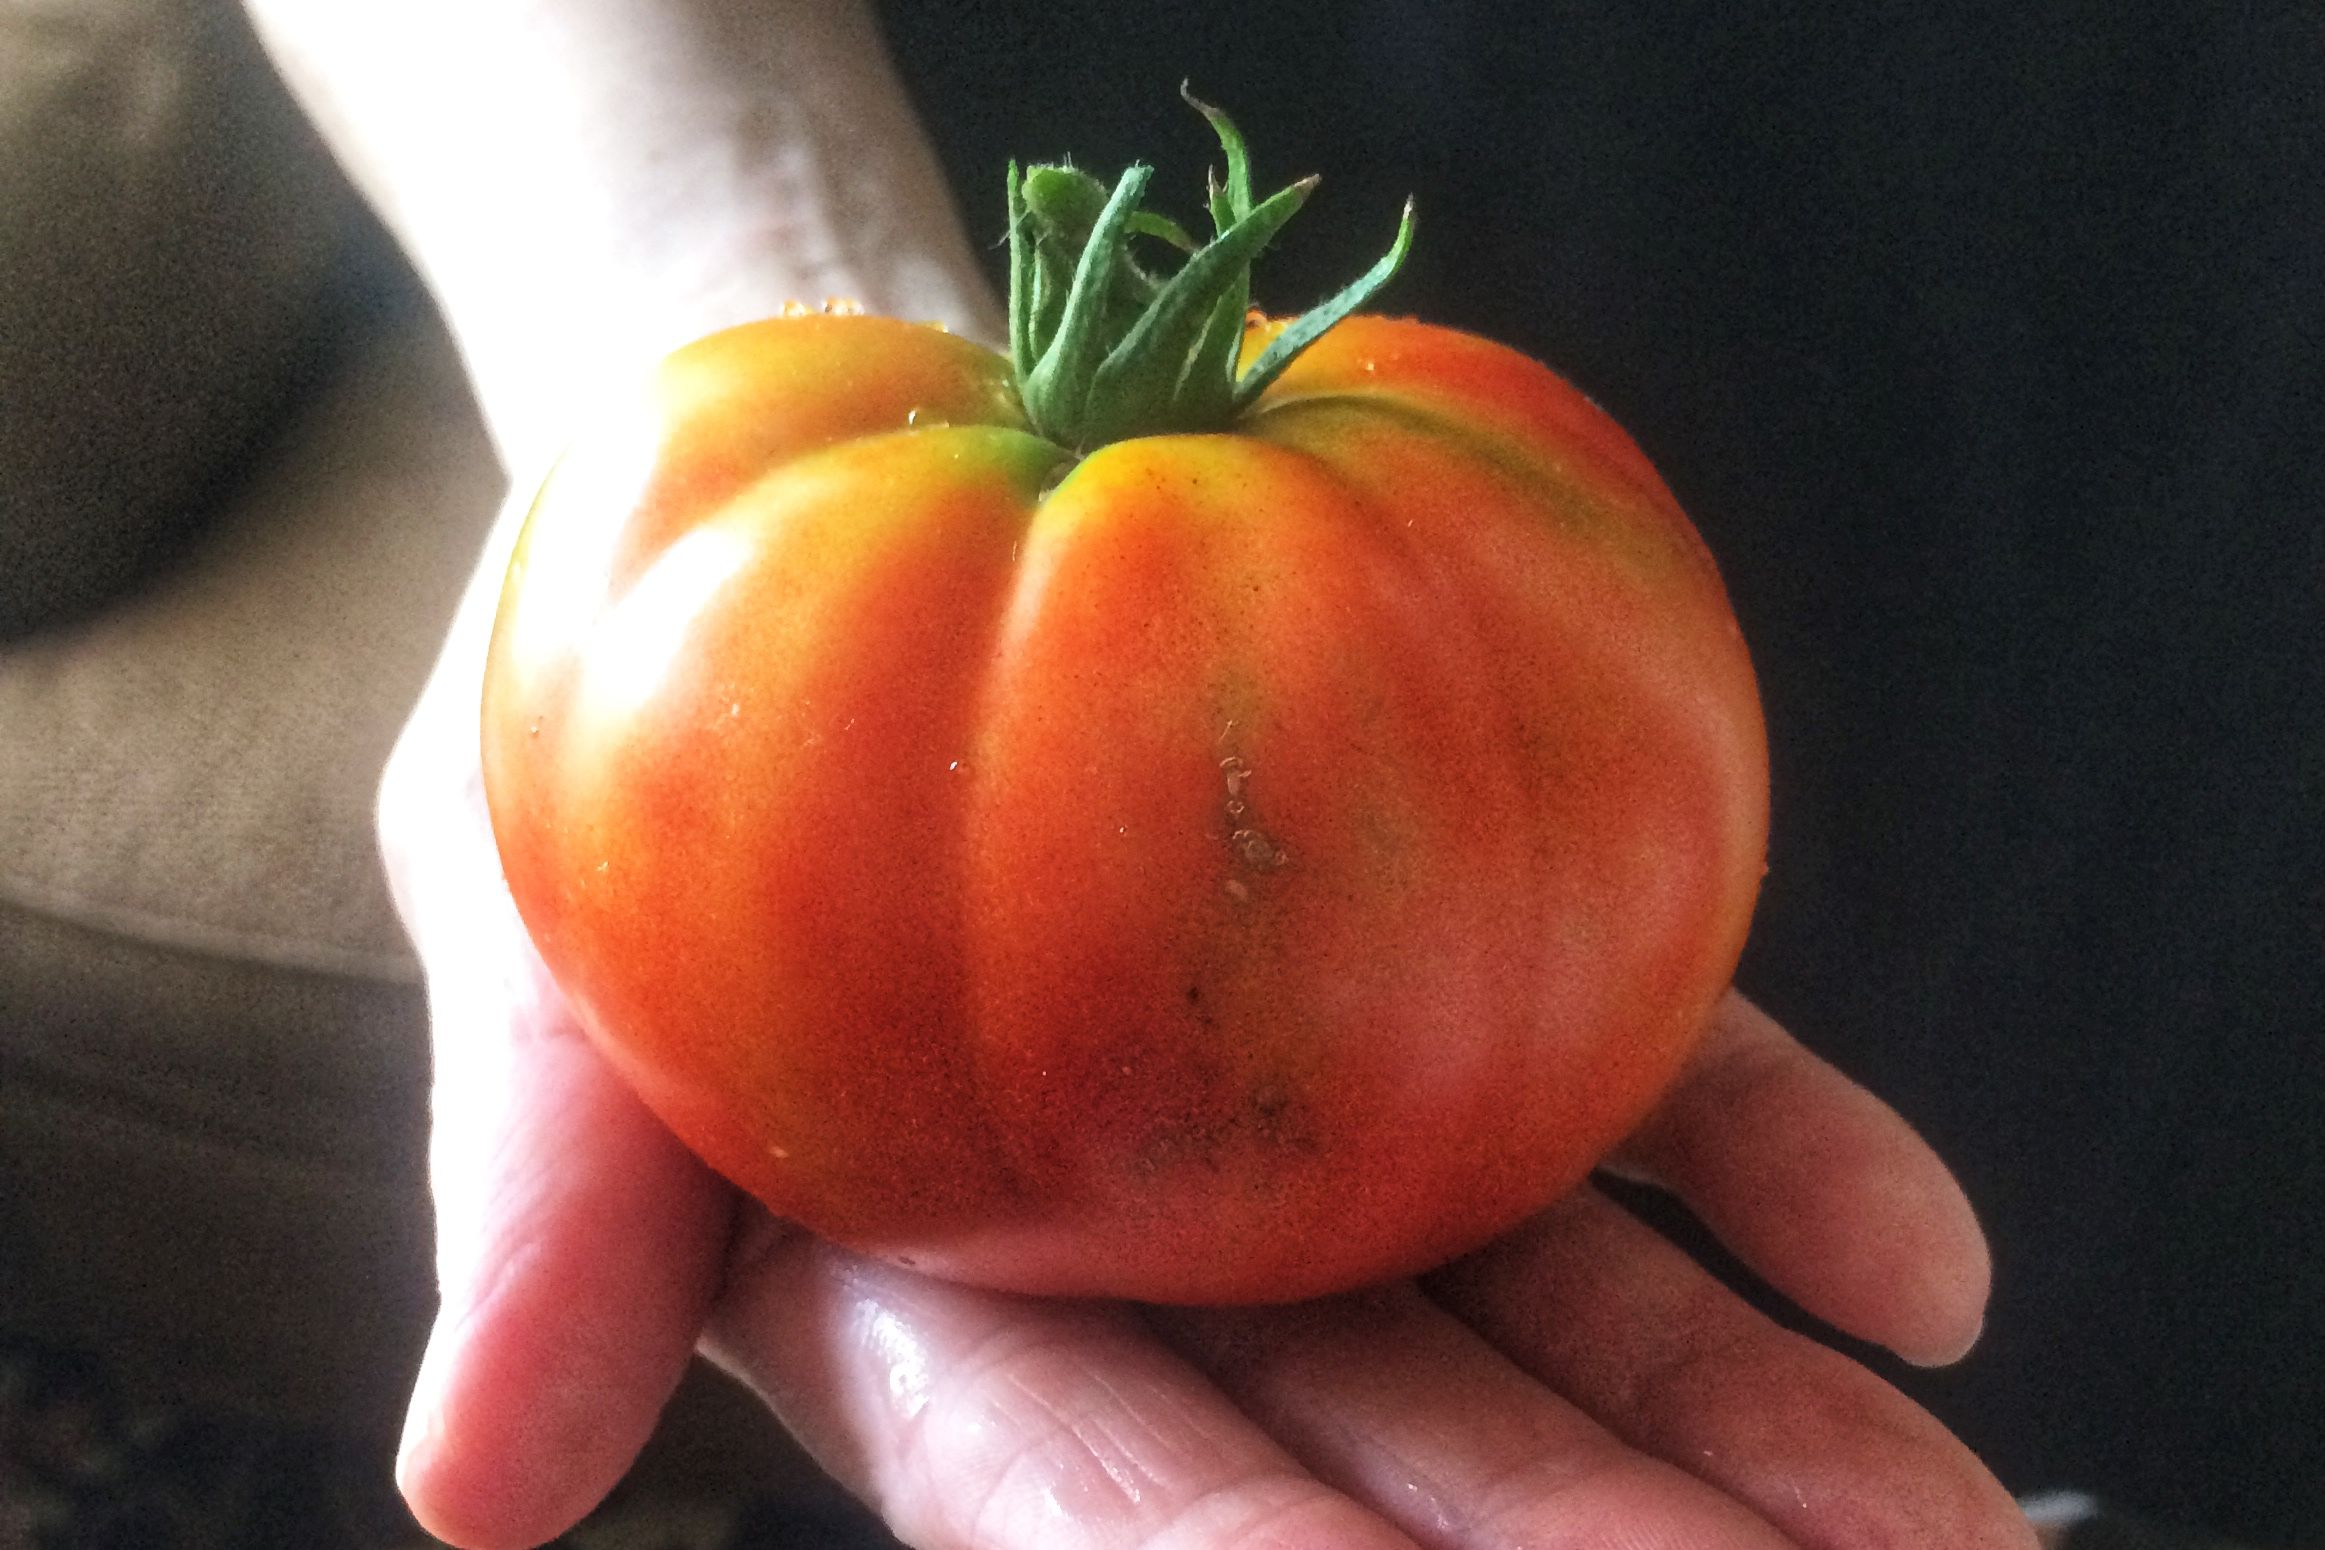 Judy's First Tomato